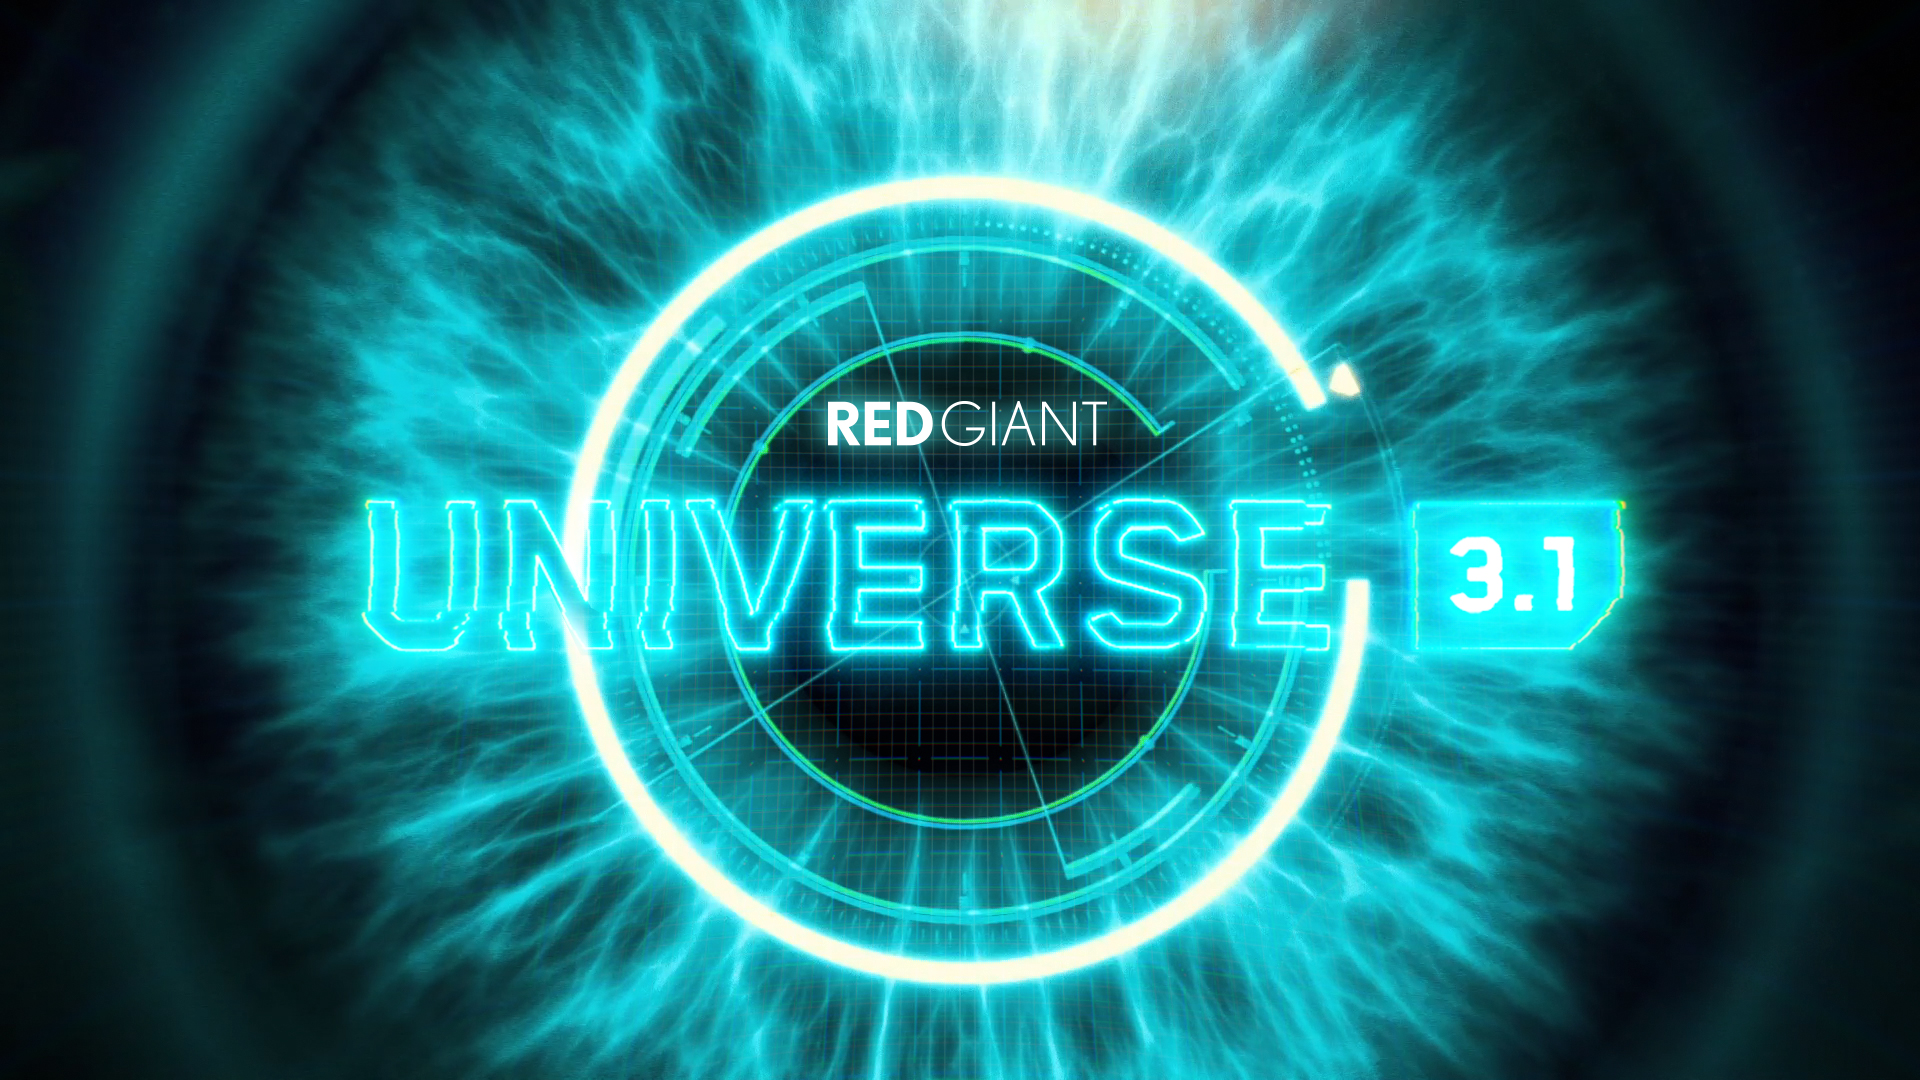 red giant universe 3.1